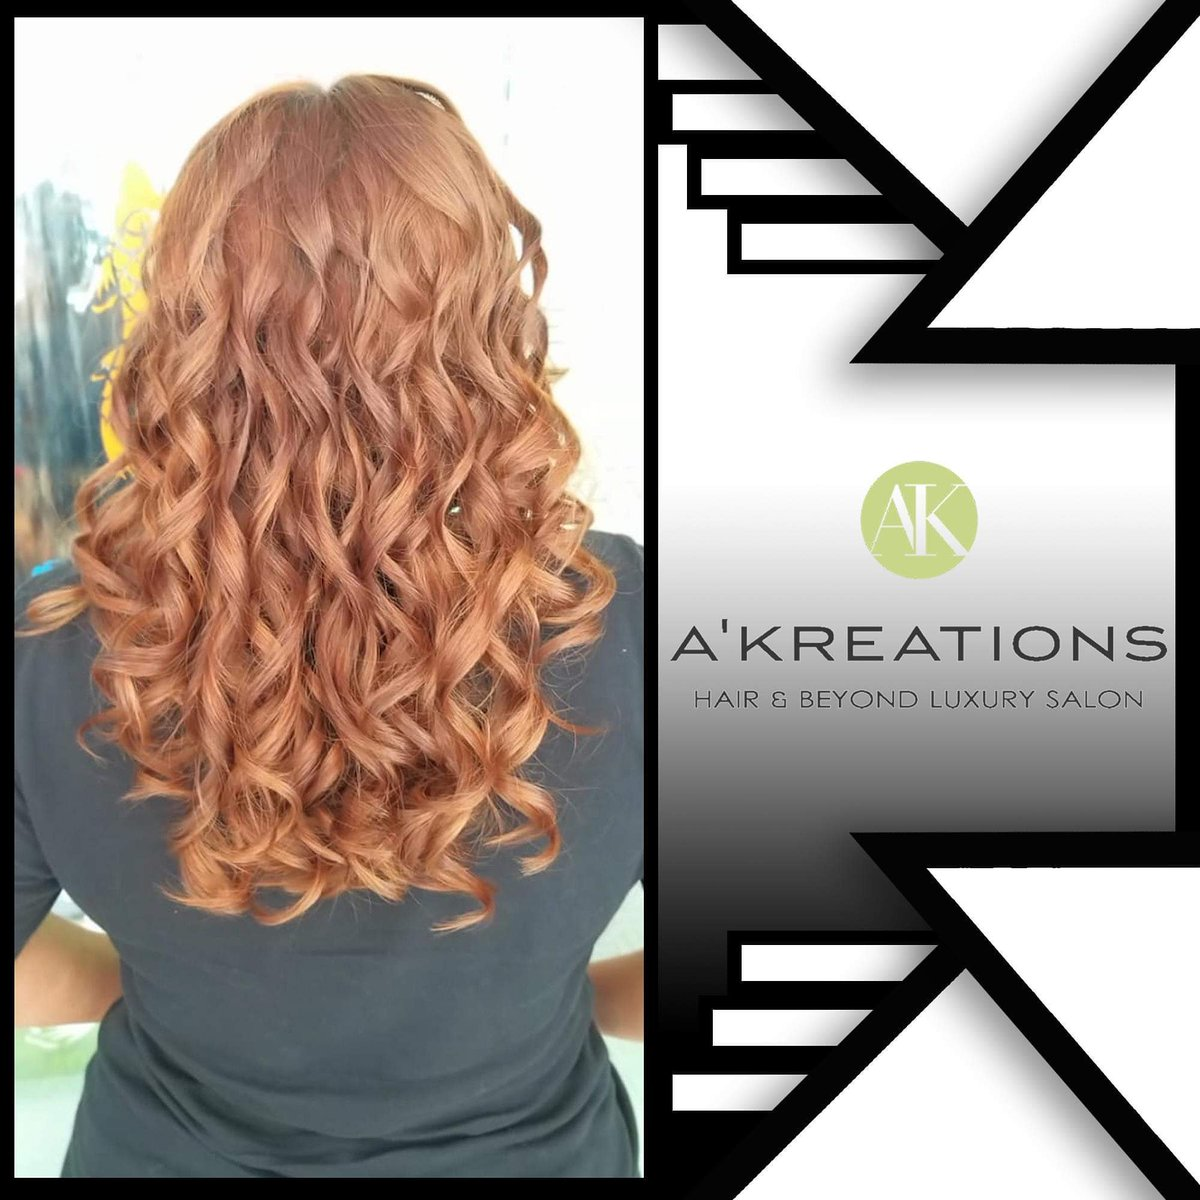 A Kreations On Twitter Spiral Curls Created Using The Automatic Curler Device To Achieve Perfectly Bouncy And Defined Curls Get Your Hair Styled With Voluminous Curls At Akreationsindia Call Us On 7208999911 Https T Co 3xl8faca16